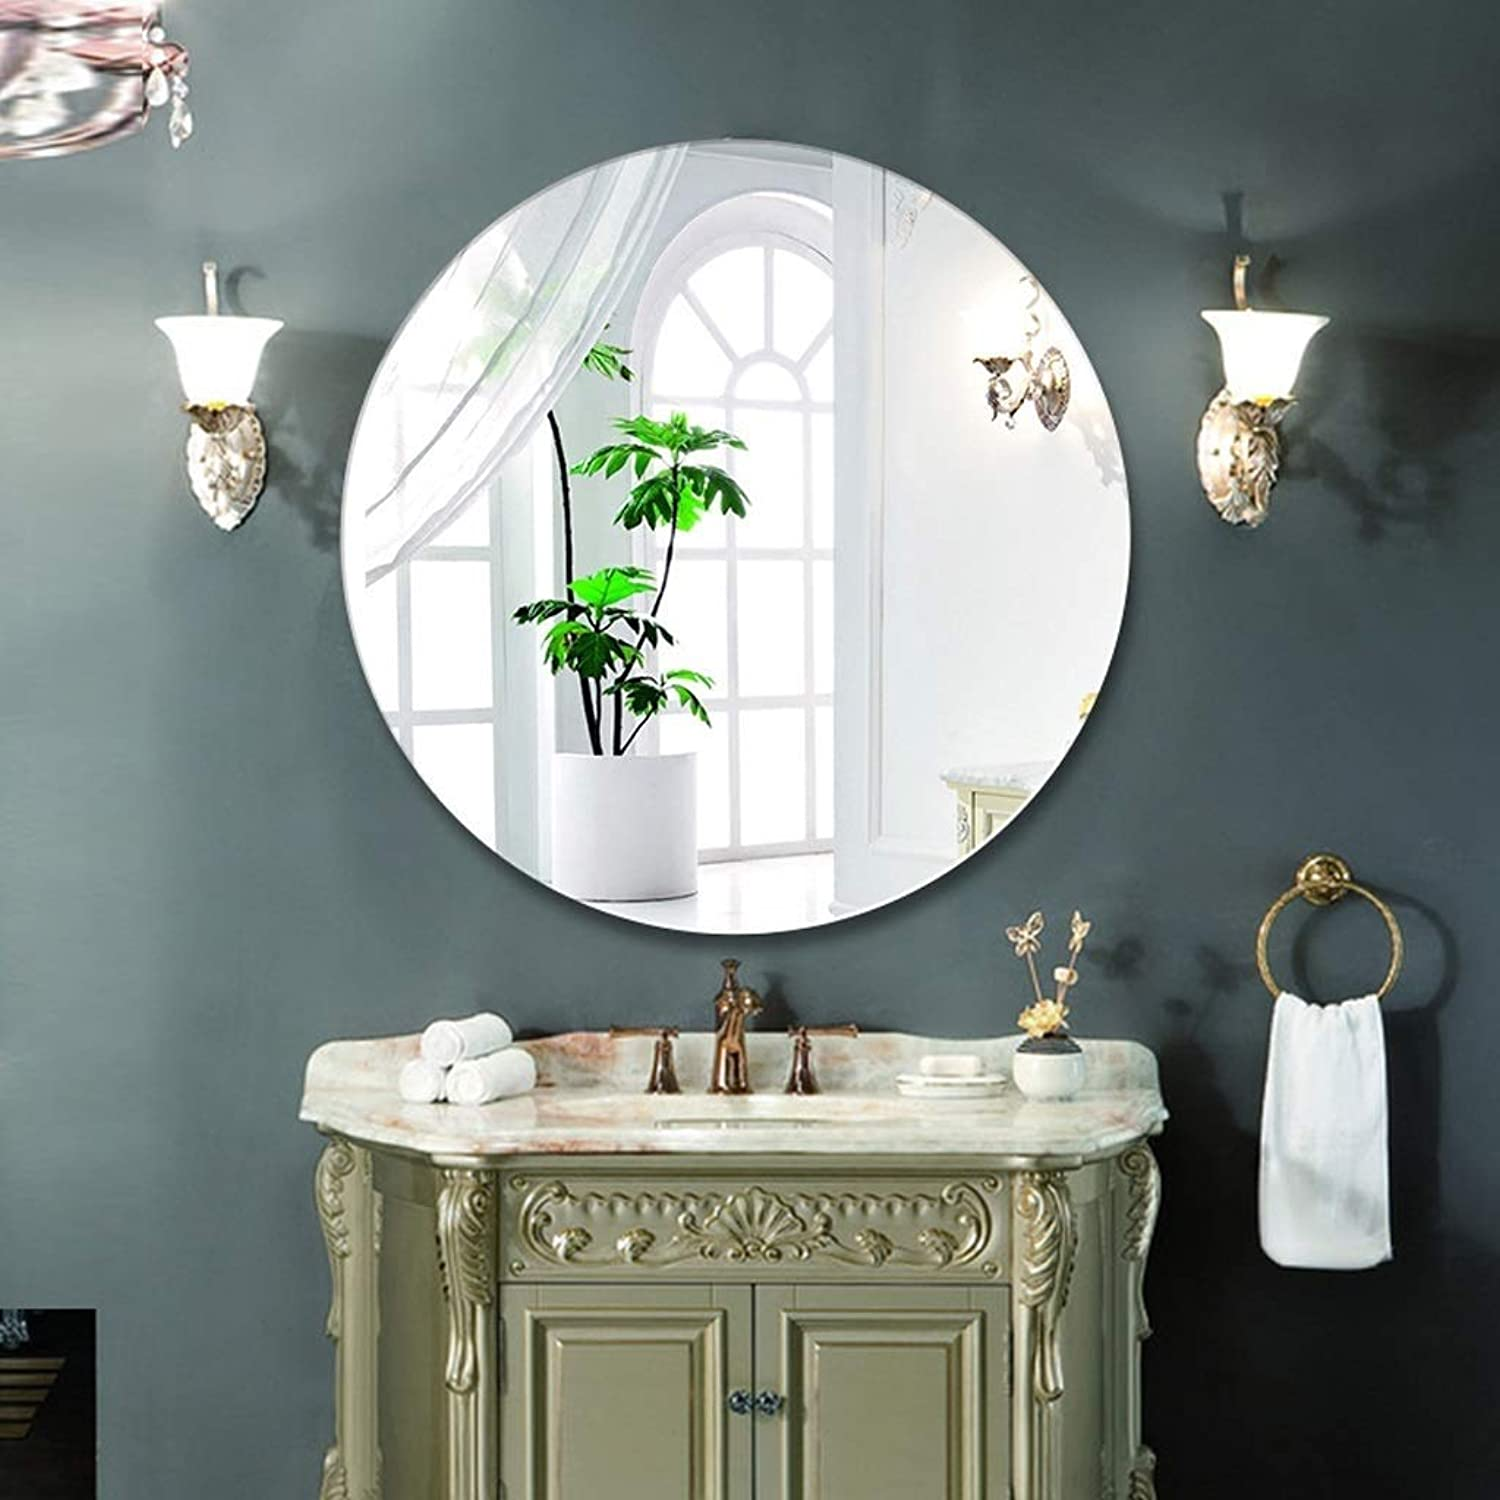 XIUXIU Mirror Simple Round Punch-Free Frameless Vanity Mirror Bedroom Wall Hanging Decorative Mirror (Size   40  40 cm)